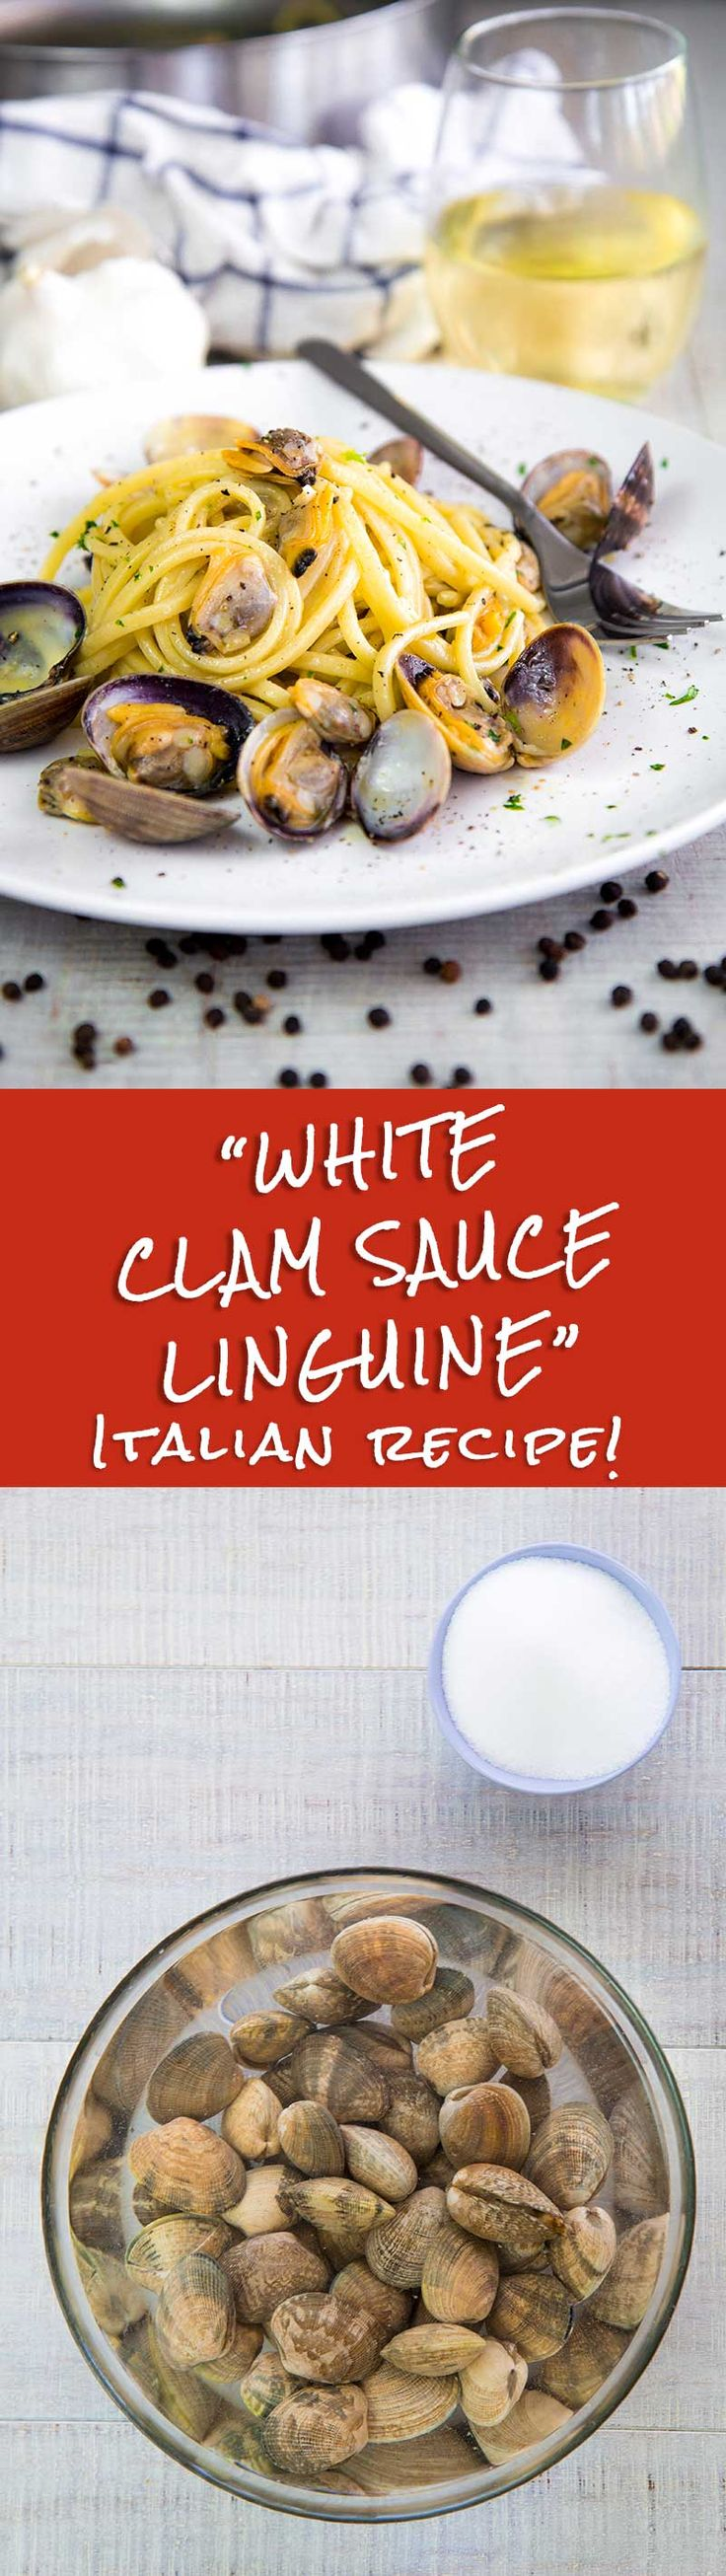 WHITE CLAM SAUCE LINGUINE Italian recipe - White clam sauce linguine is a classic Italian! This sauce is very simple but needs prime quality ingredients; the more the shellfish are fresh, the more the clam sauce will be tasty! Personally, I love to add a teaspoon of grated lemon peel combined with minced parsley just before serving; a sweet and sour taste that pairs greatly with the salty flavor of the clams!  healthy Italy family dinner recipes black pepper recipe shellfish